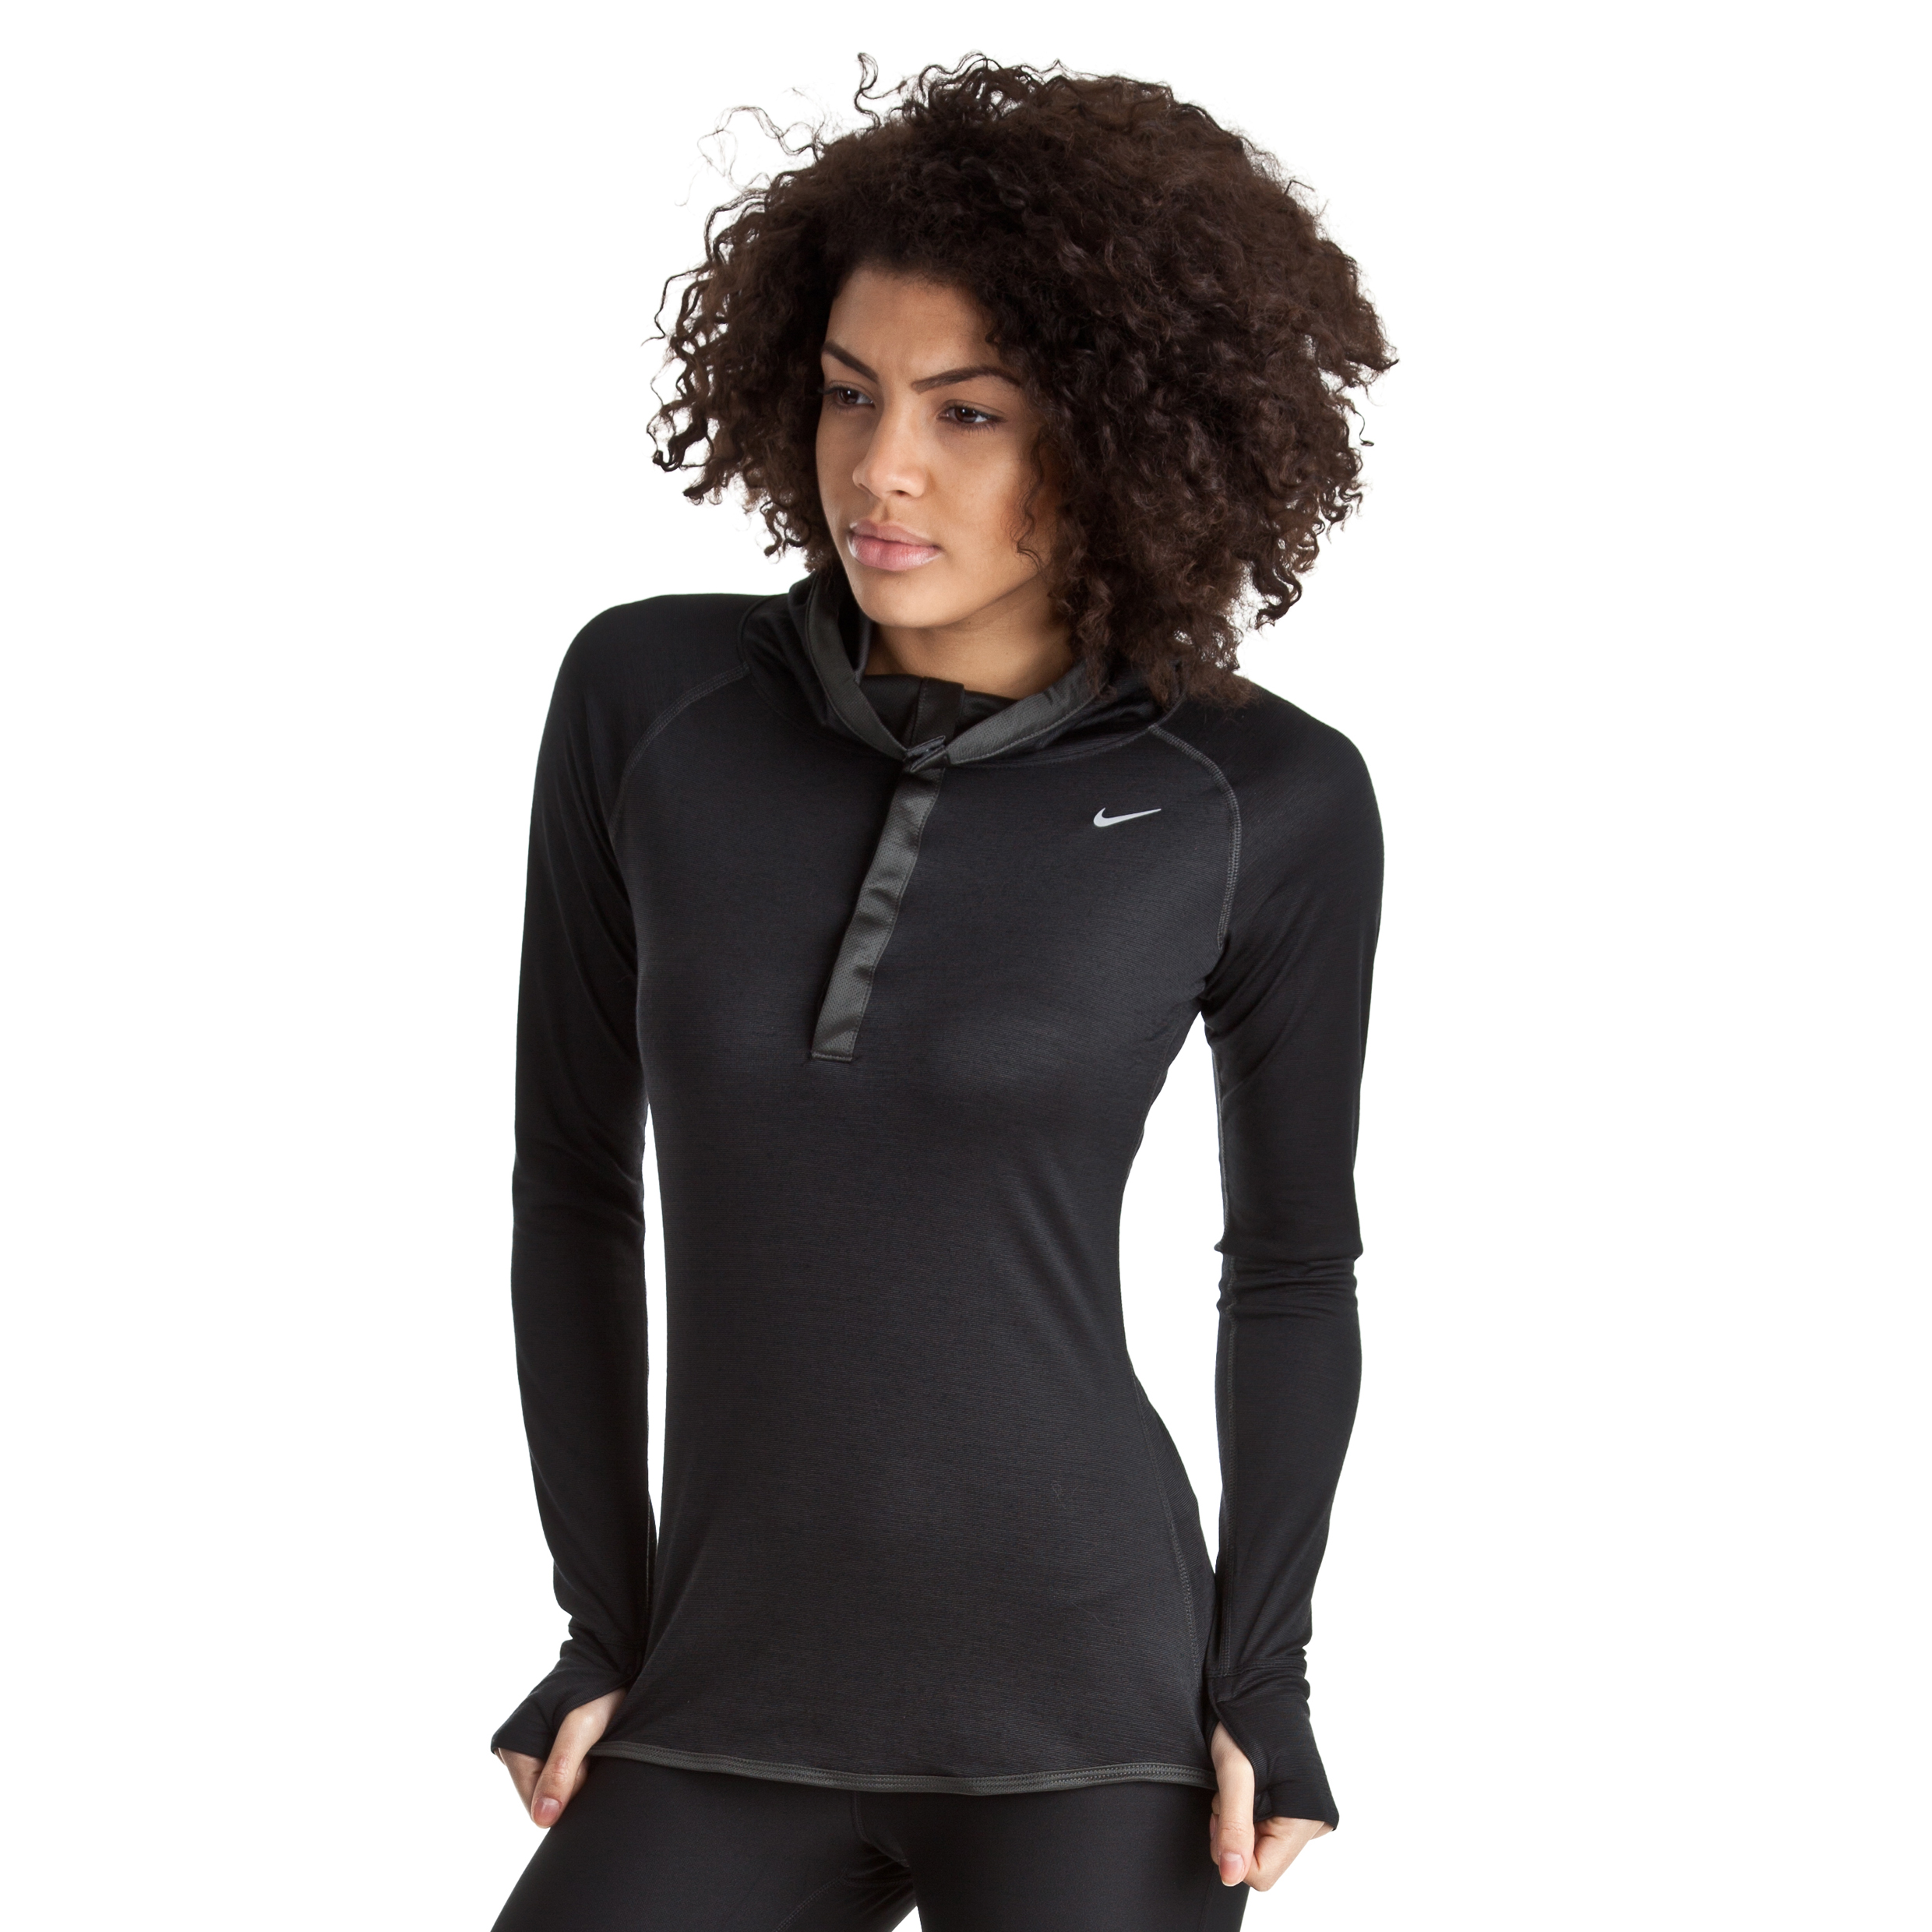 Nike Wool Hoody - Black/Anthracite/Reflective Silv - Womens